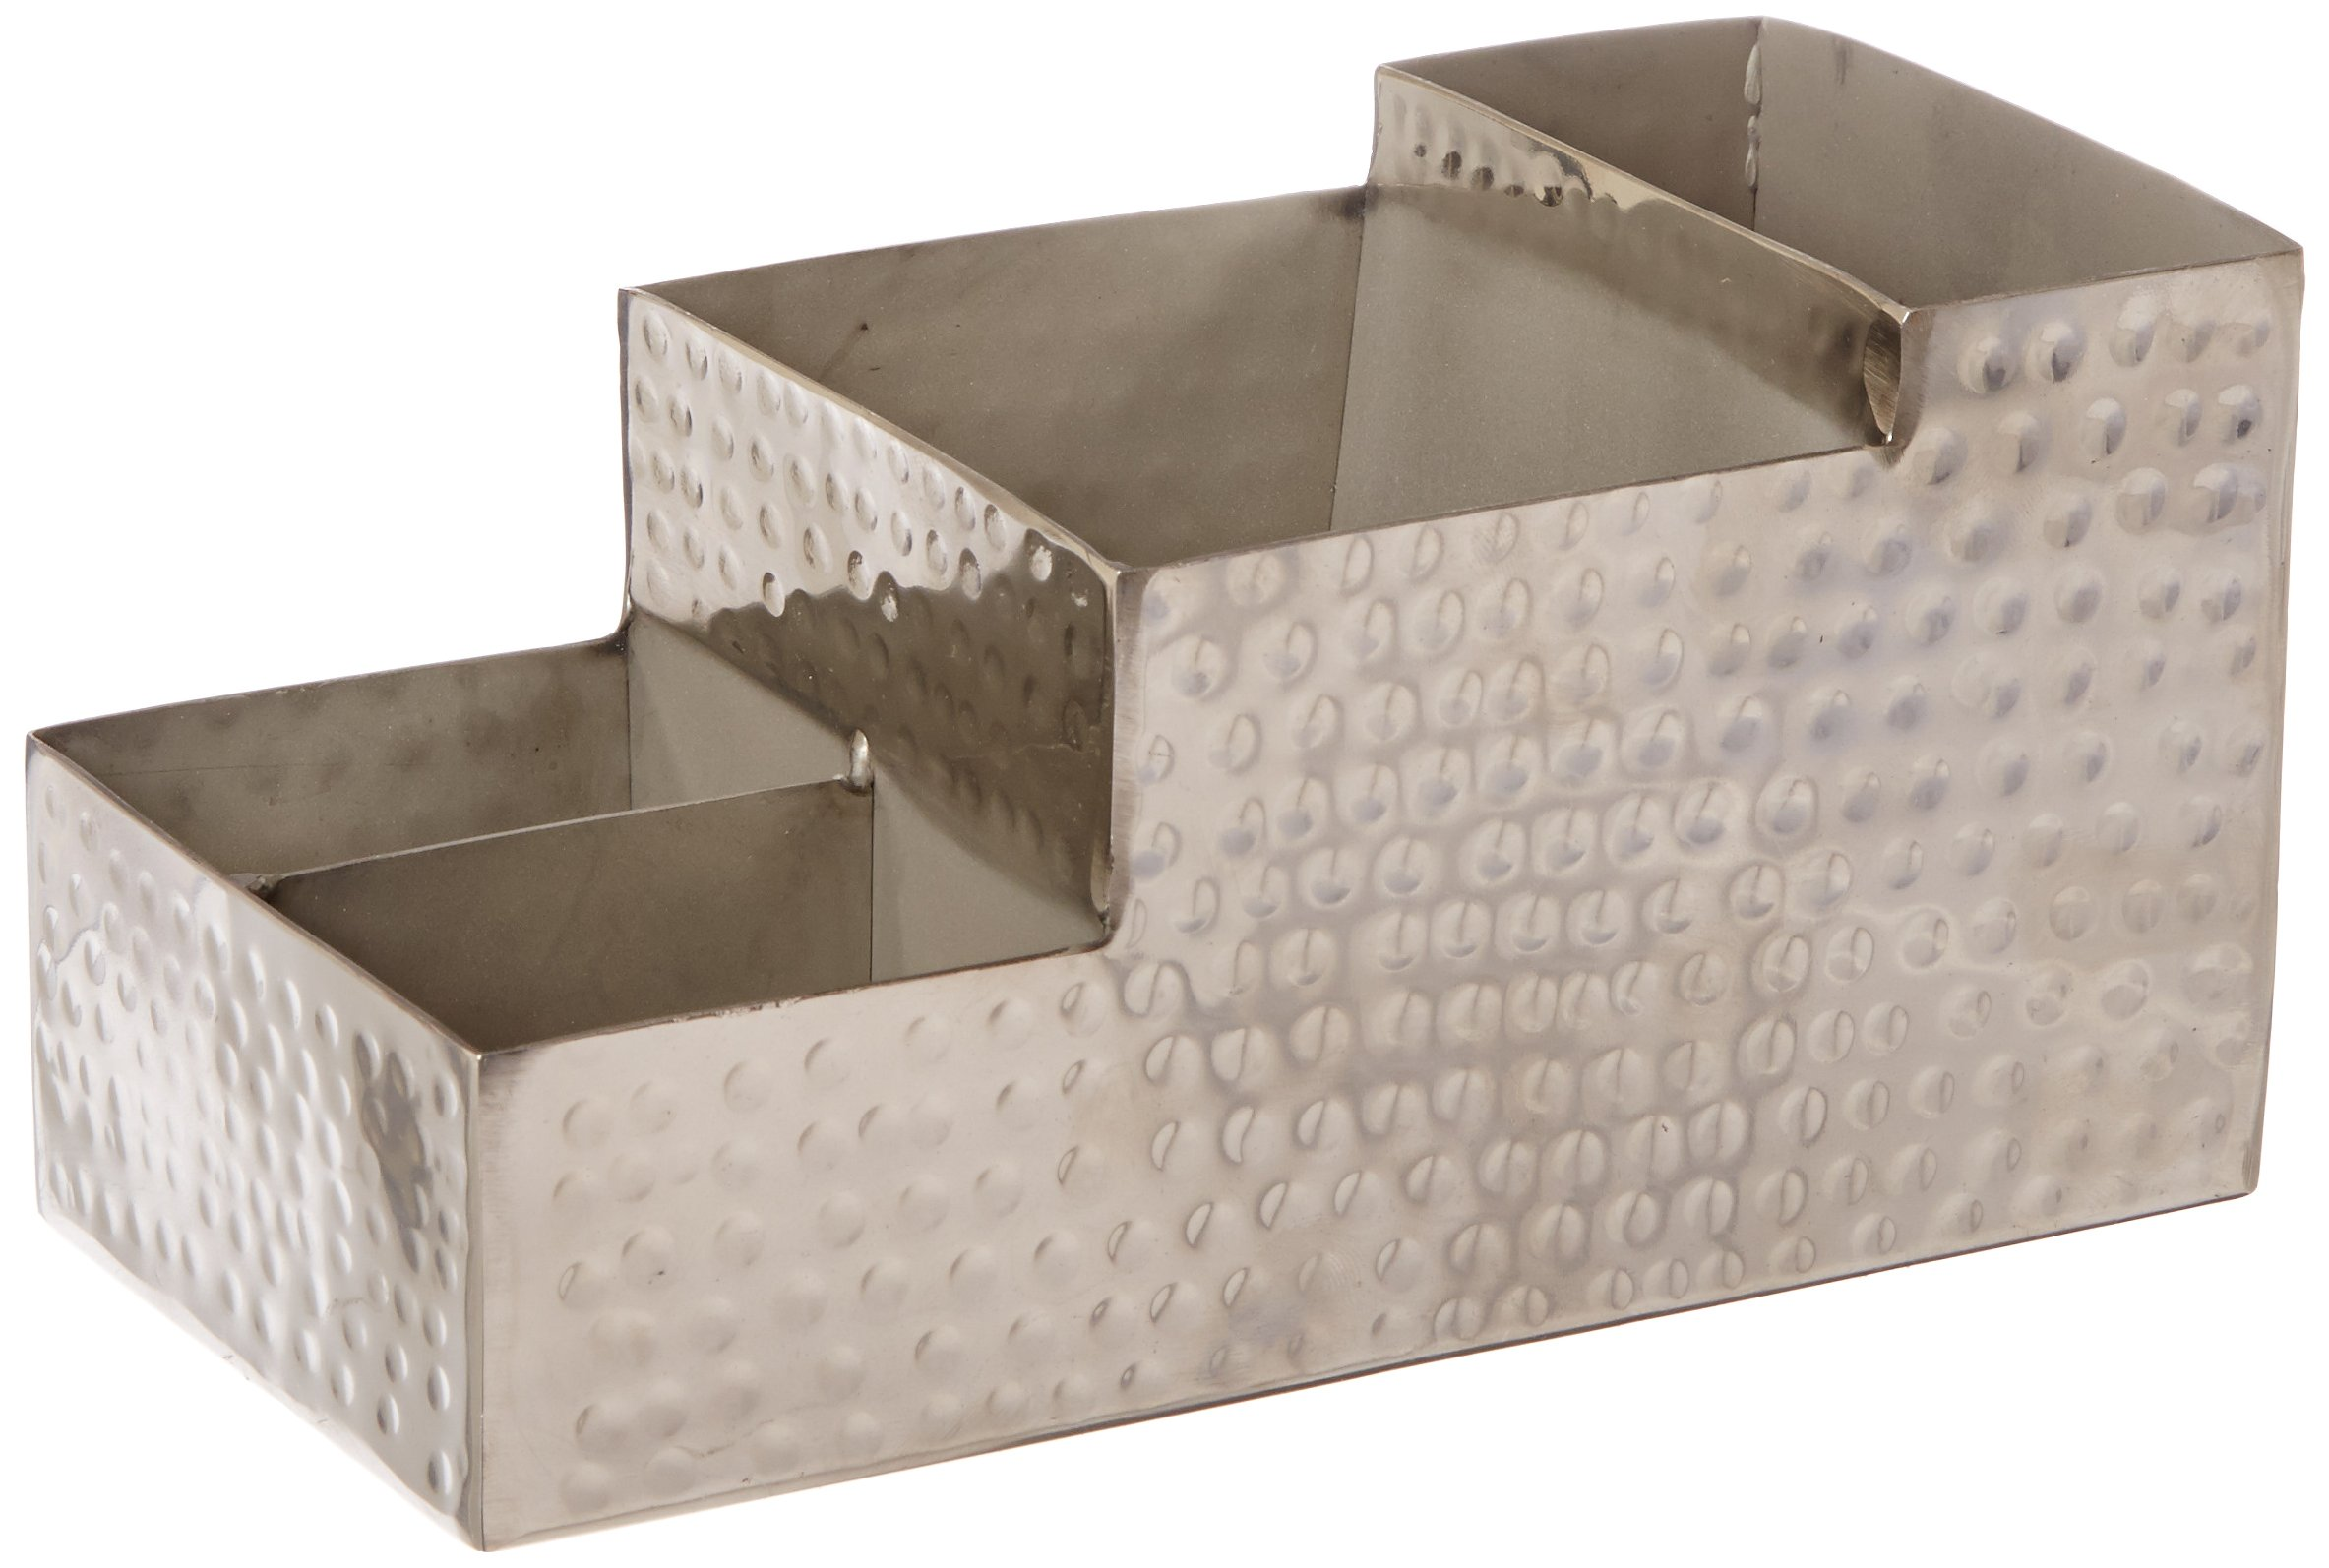 American Metalcraft HMBAR9 Hammered Stainless Steel Coffee Caddy, 4 Compartments, 8'' x 4'', Silver